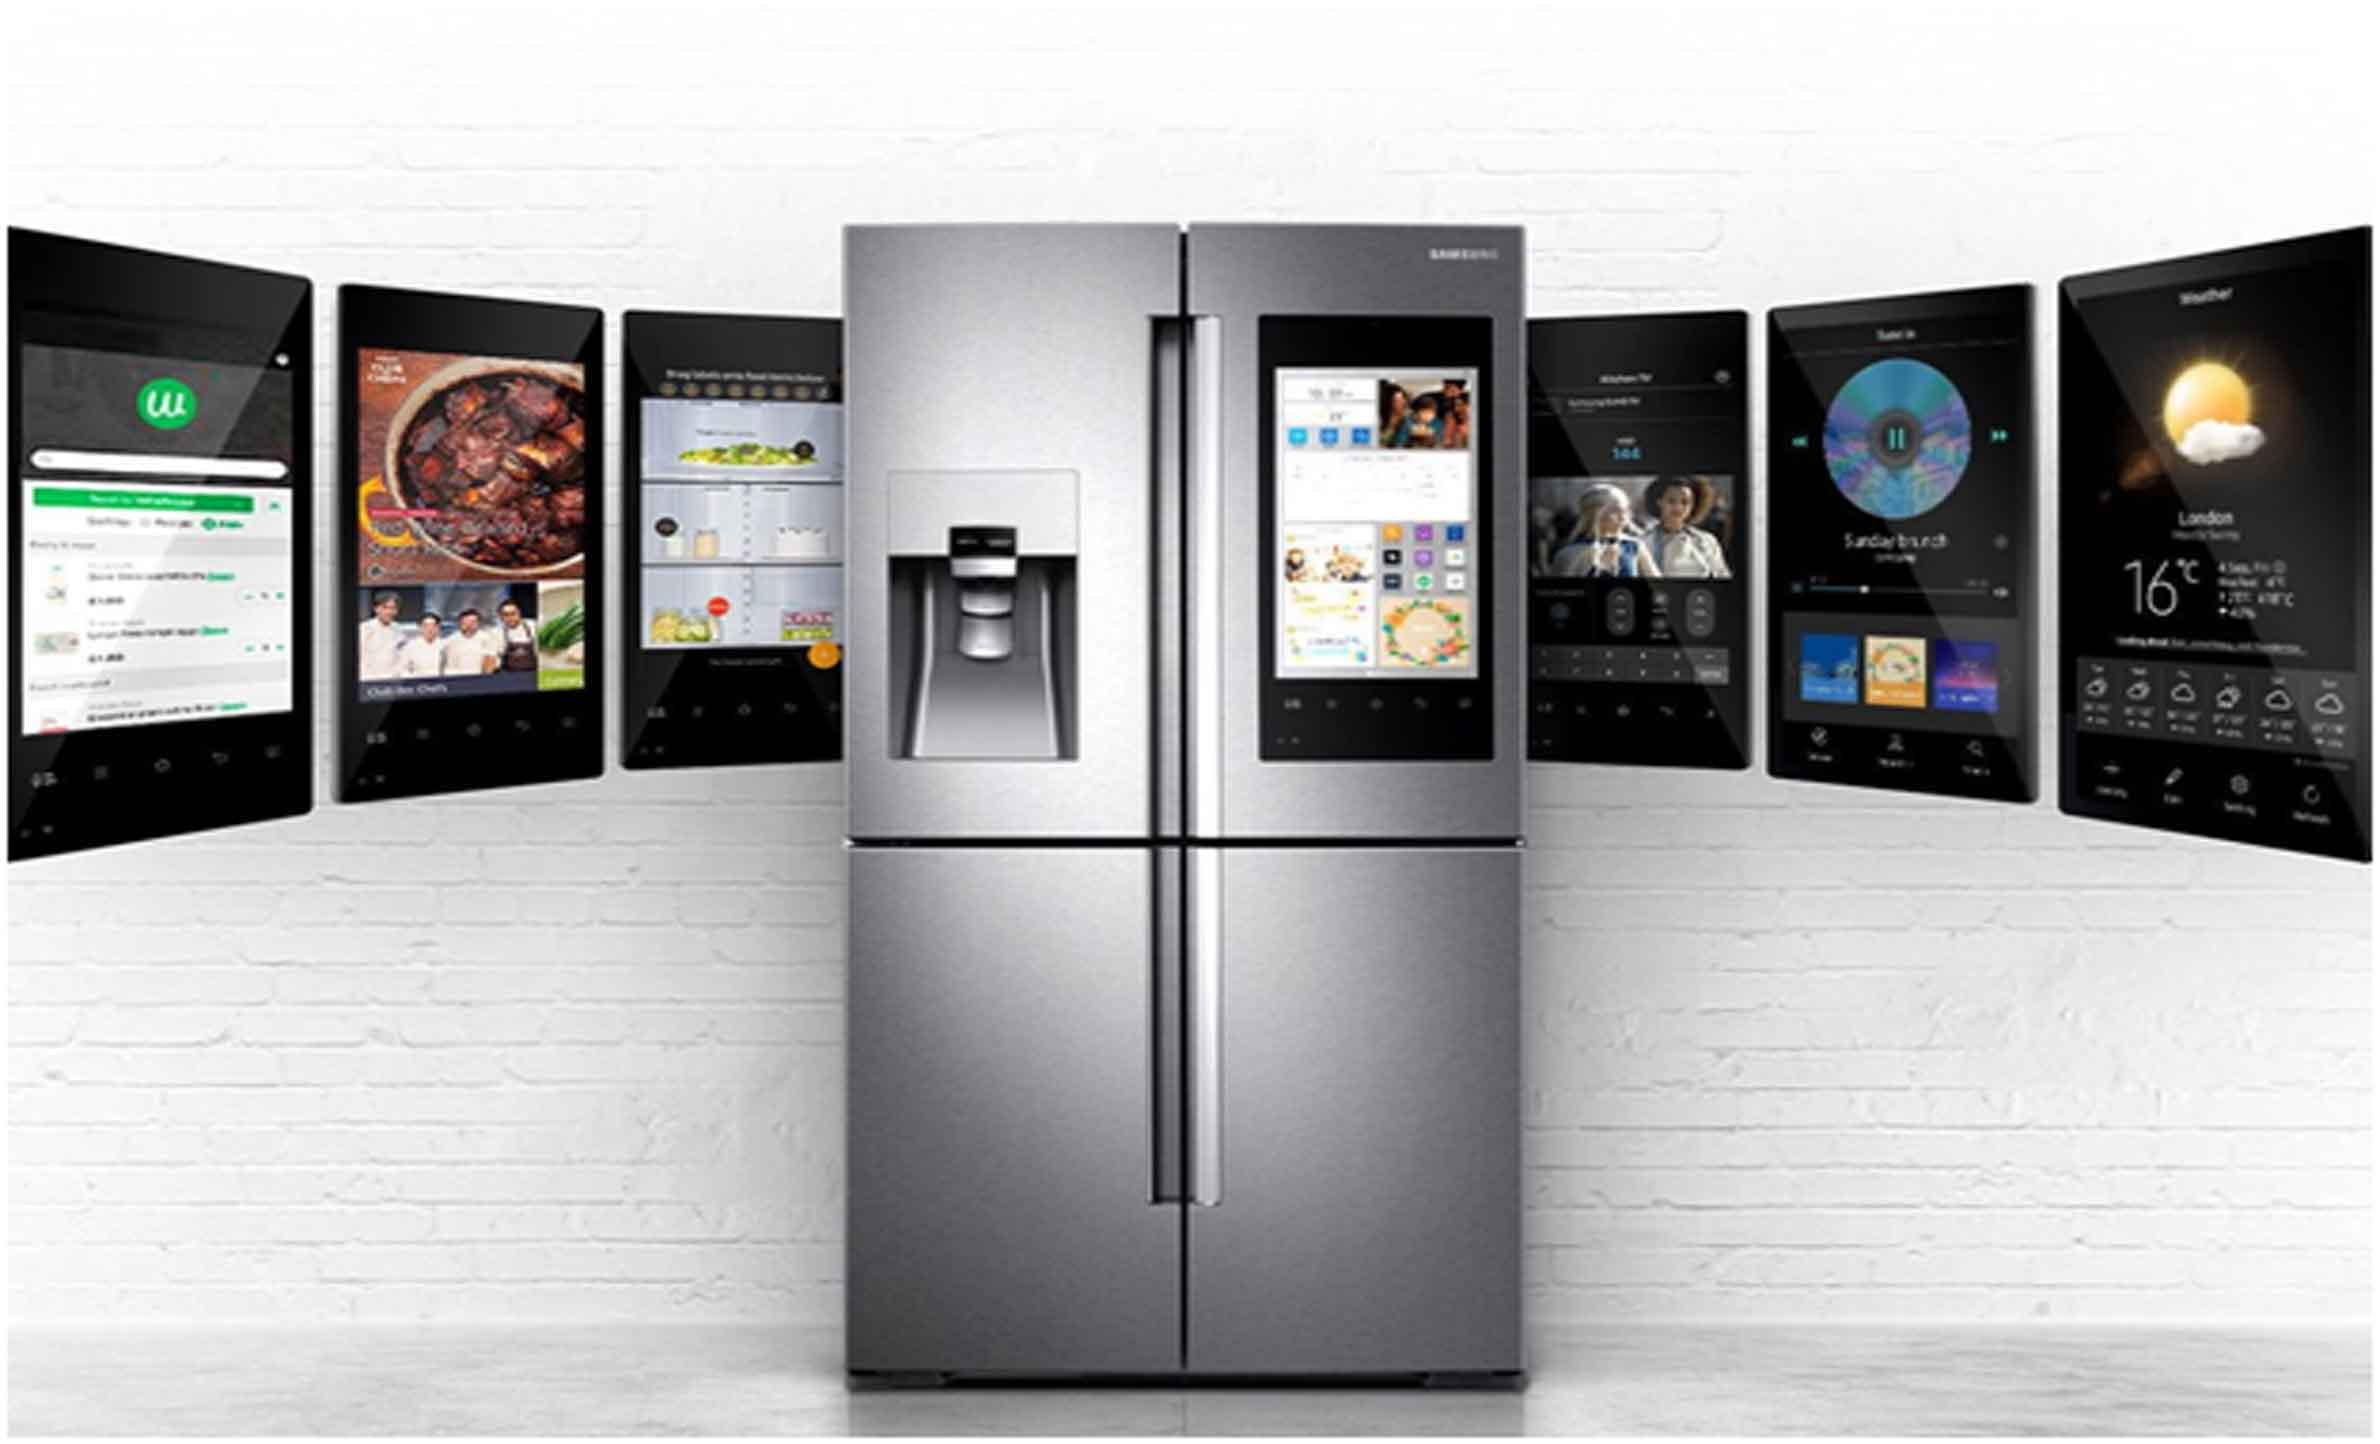 9 Future Smart Device for House